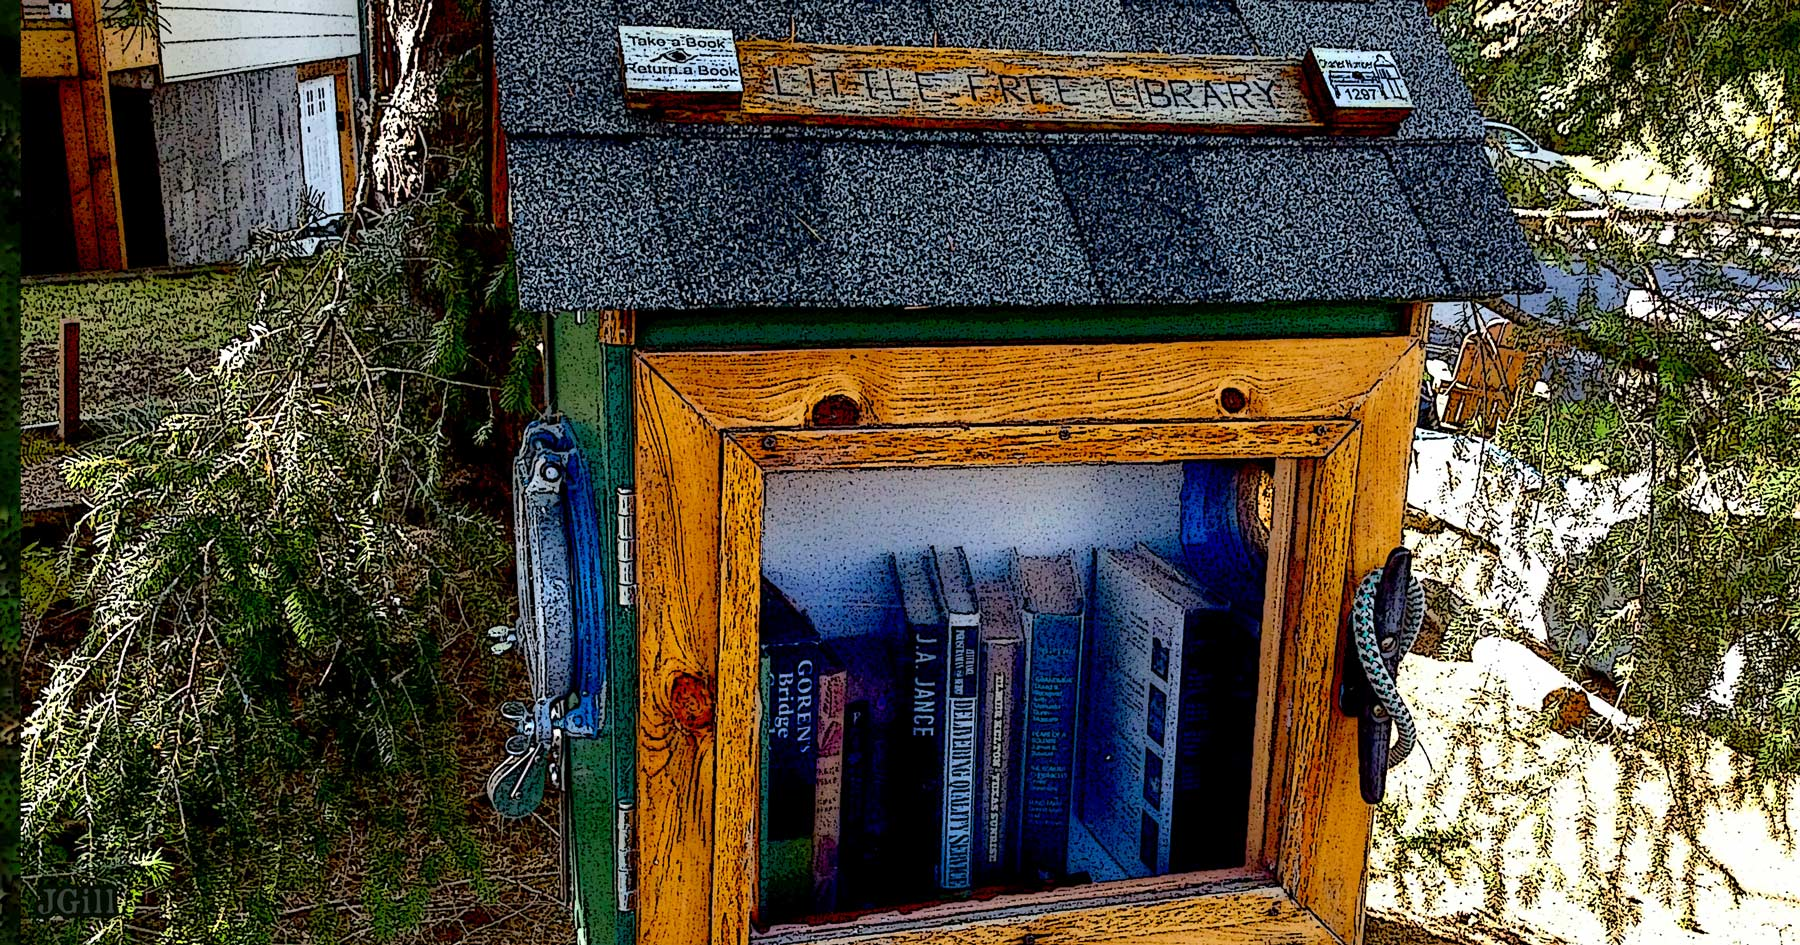 Little Free Library, illustration, Common Sense, Paul Jacob